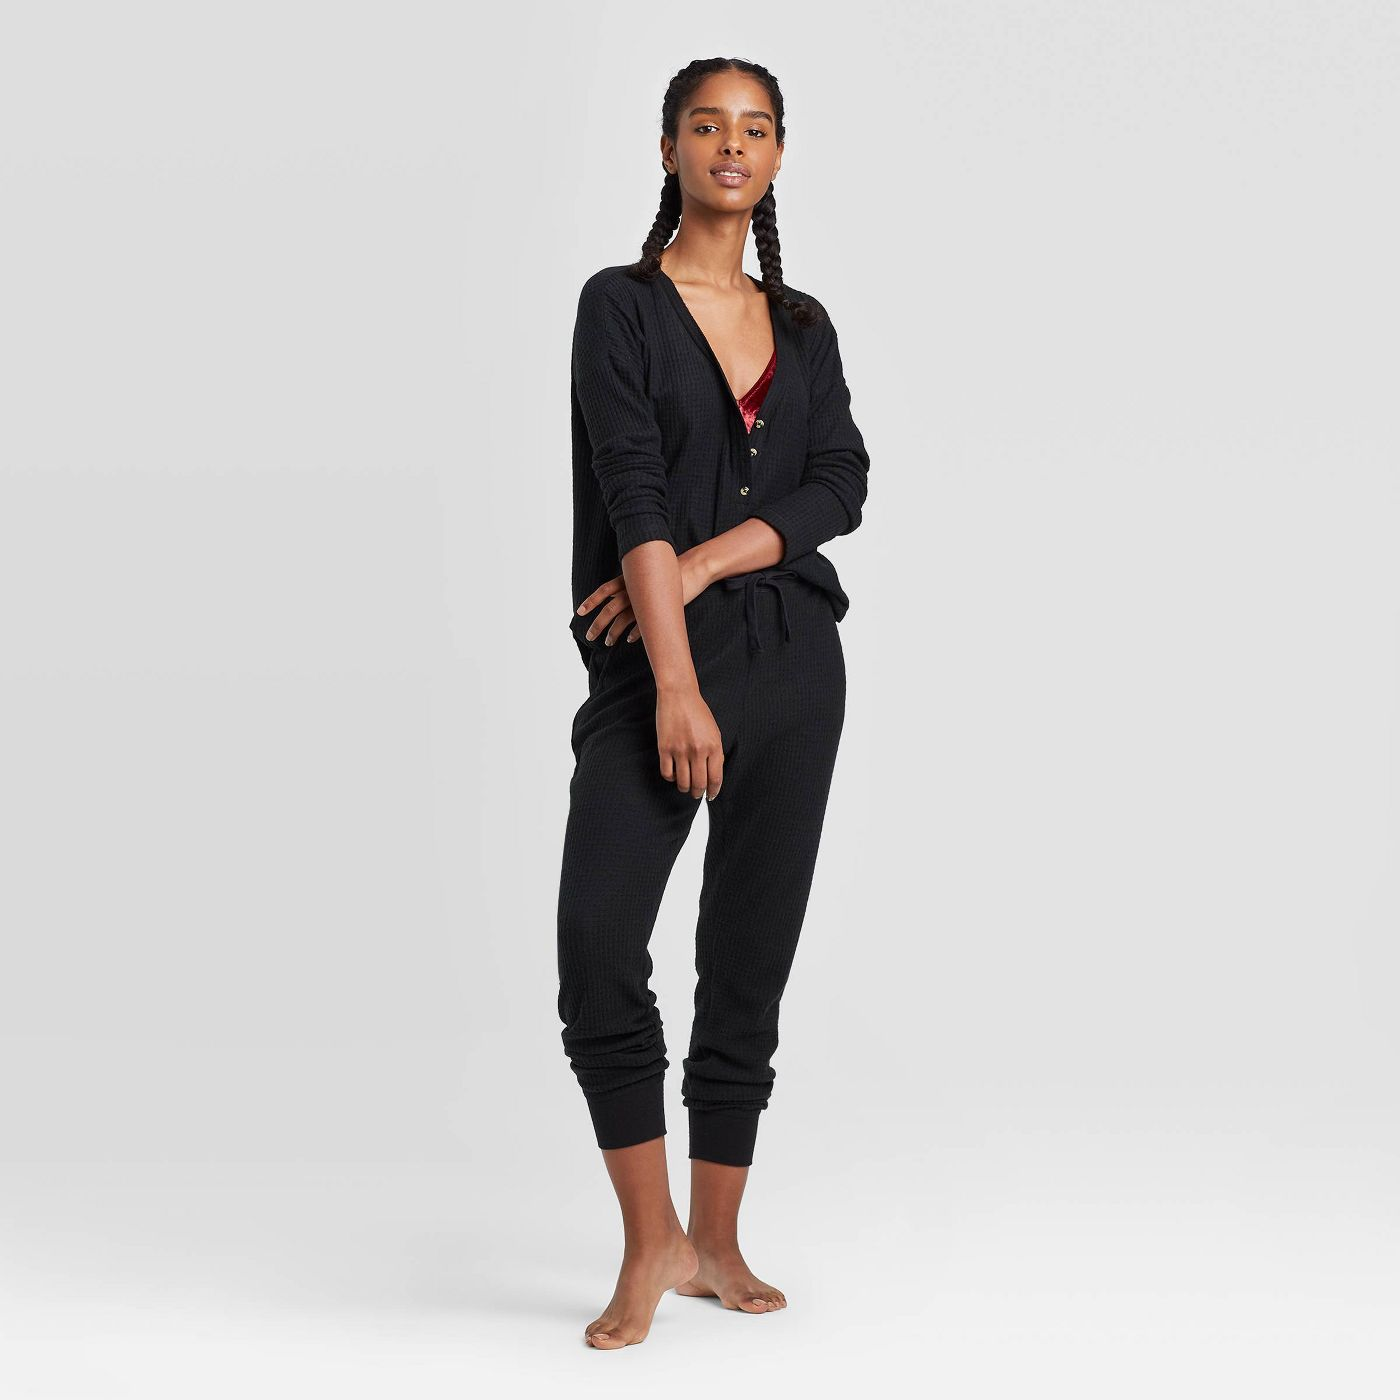 The Cutest Target Pajamas, Women's Cozy Thermal Lounge Top and Joggers